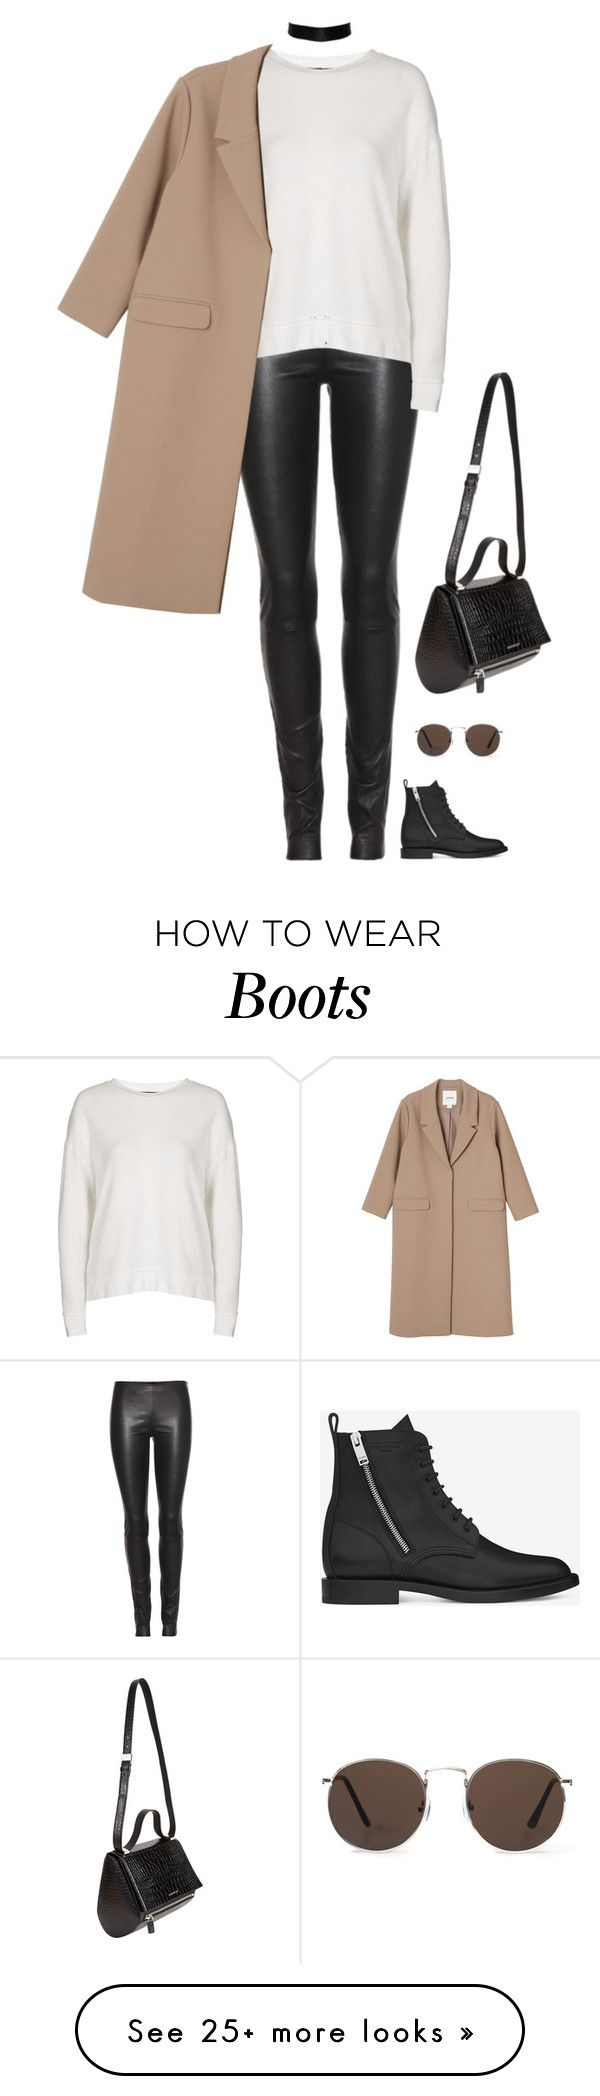 """""""Unbenannt #505"""" by llsbo on Polyvore featuring The Row, Yves Saint Laurent, Topshop, MANGO, Monki and Givenchy"""